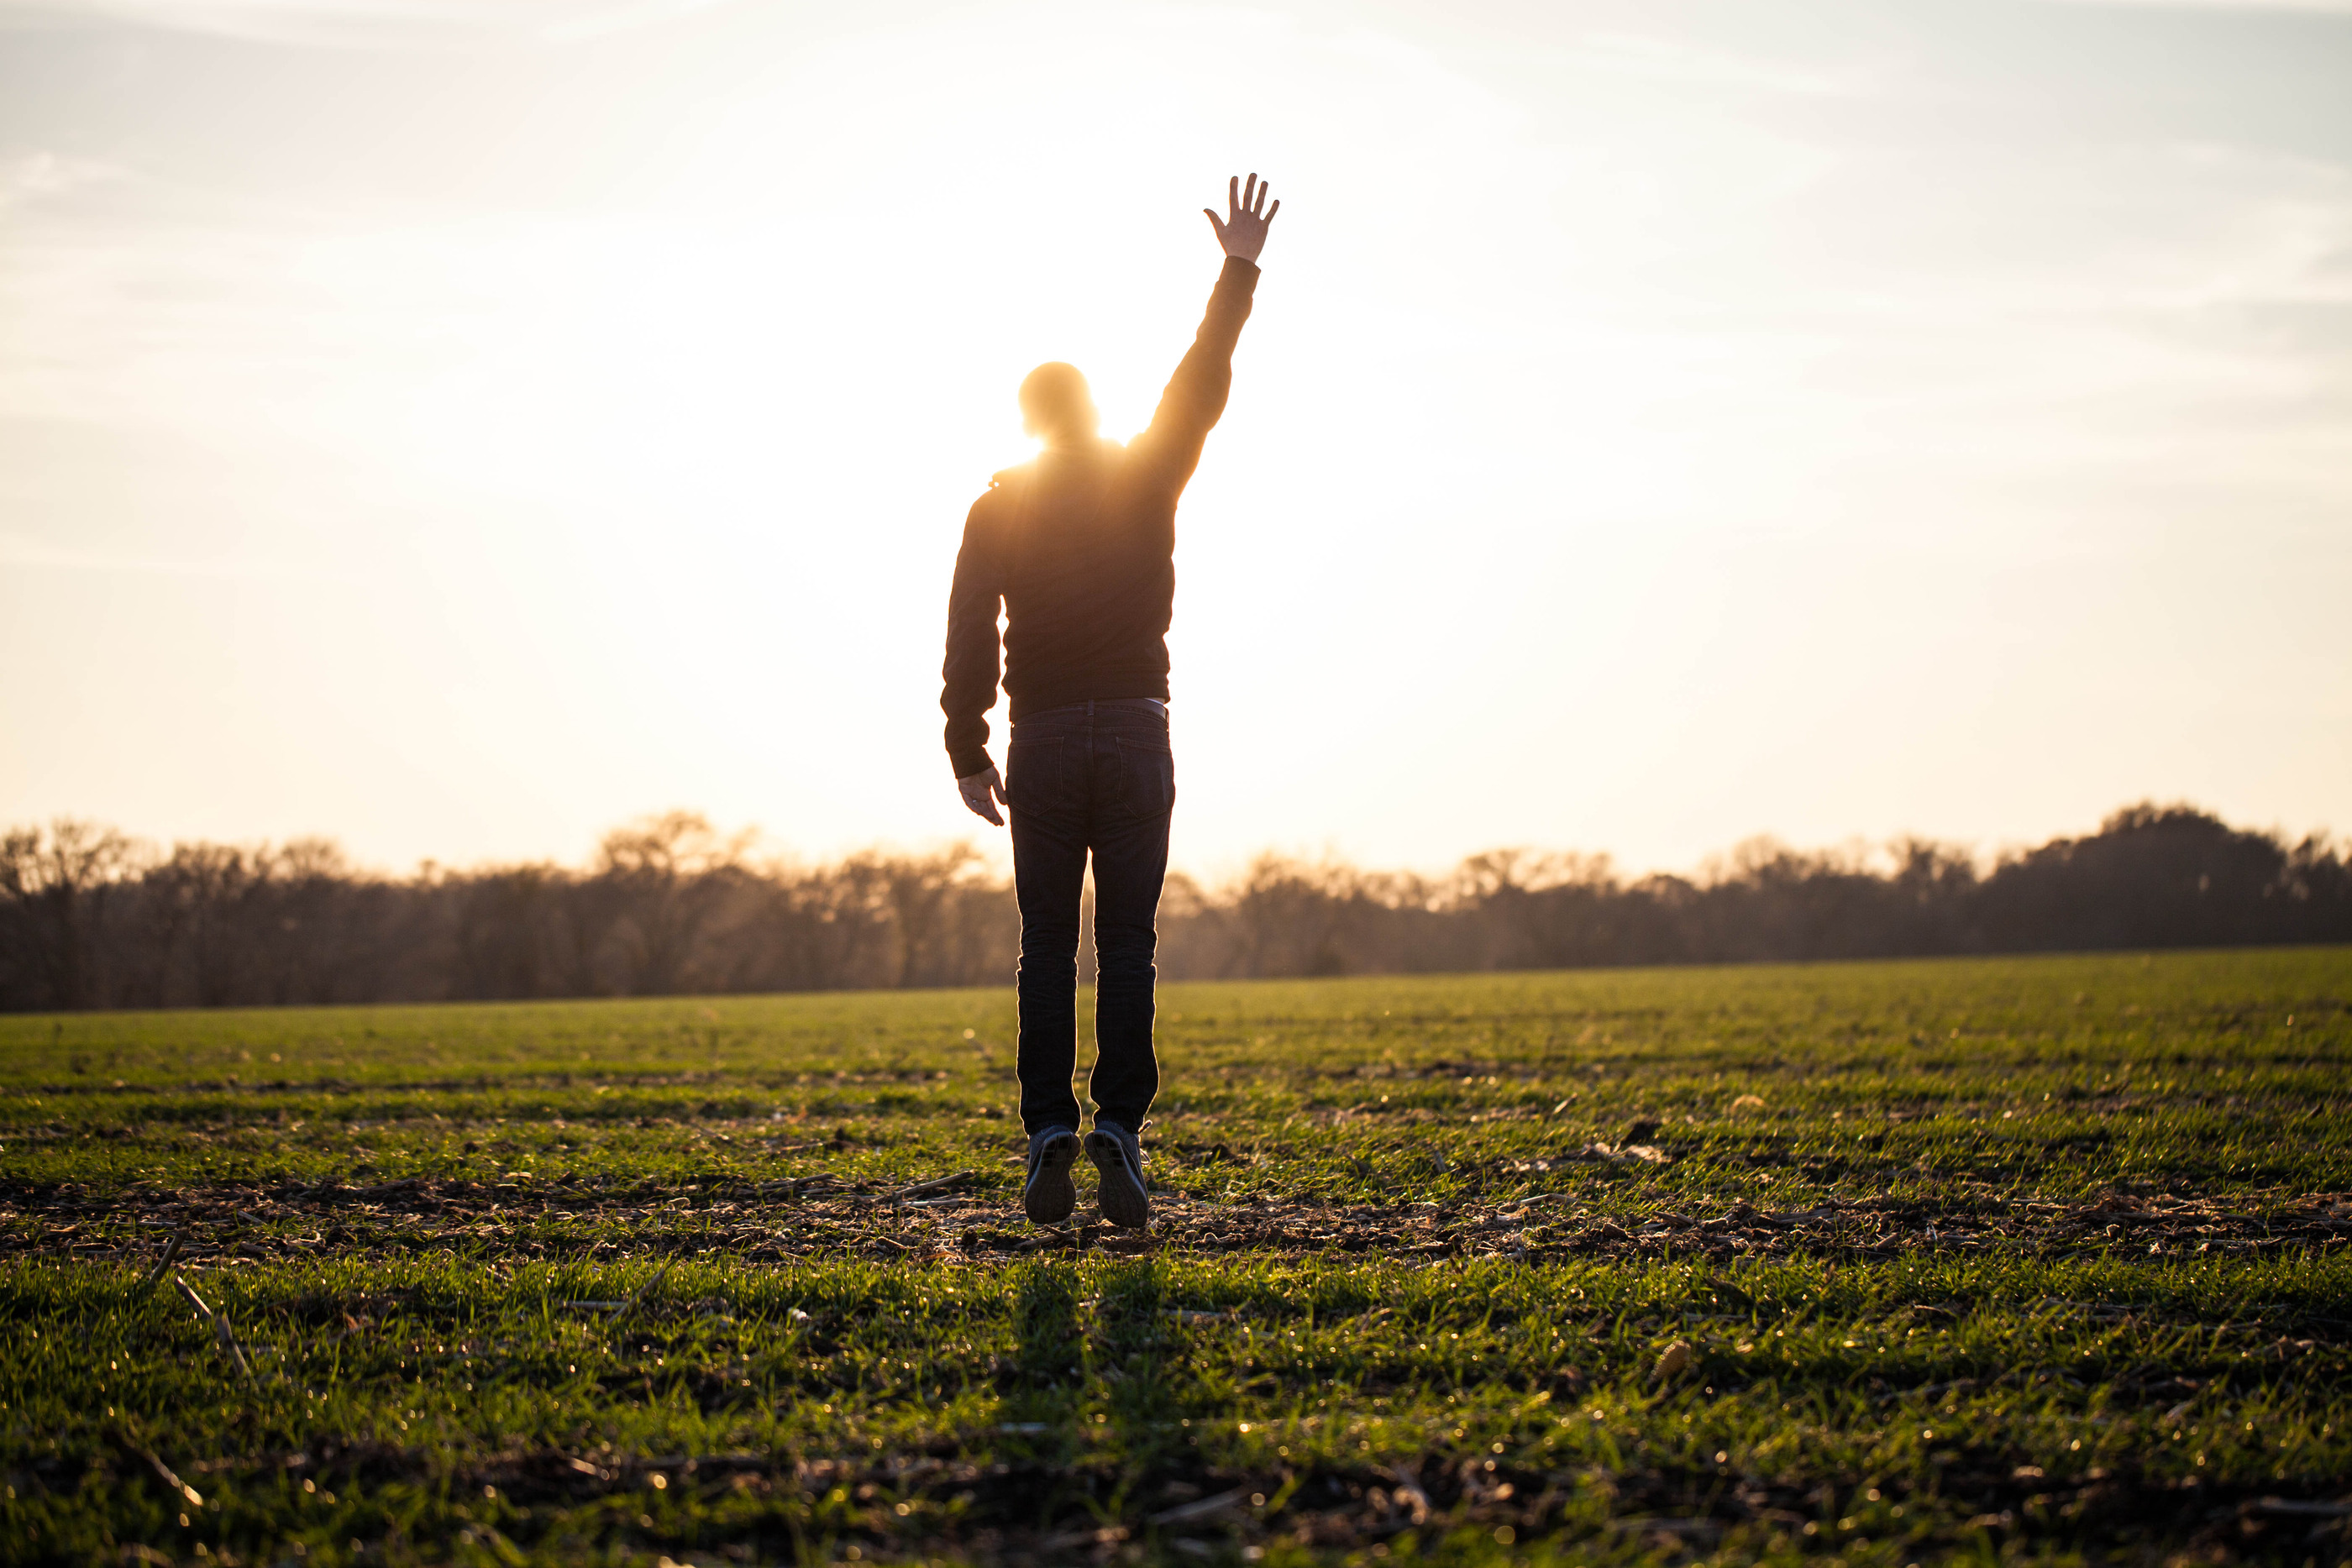 hand raised in field - lightstock_57774_medium_user_1230963